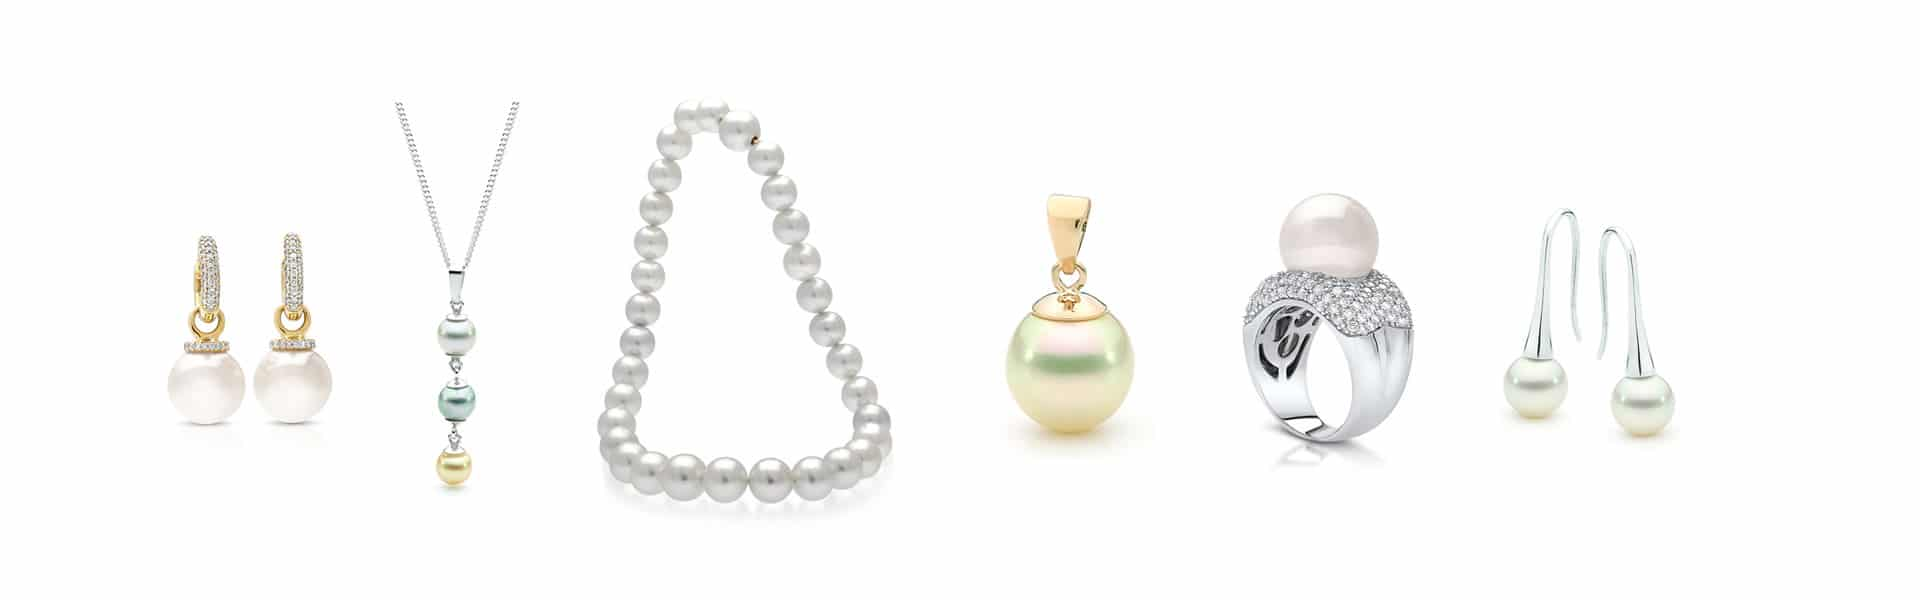 pearl jewellery earrings necklace pendant ring